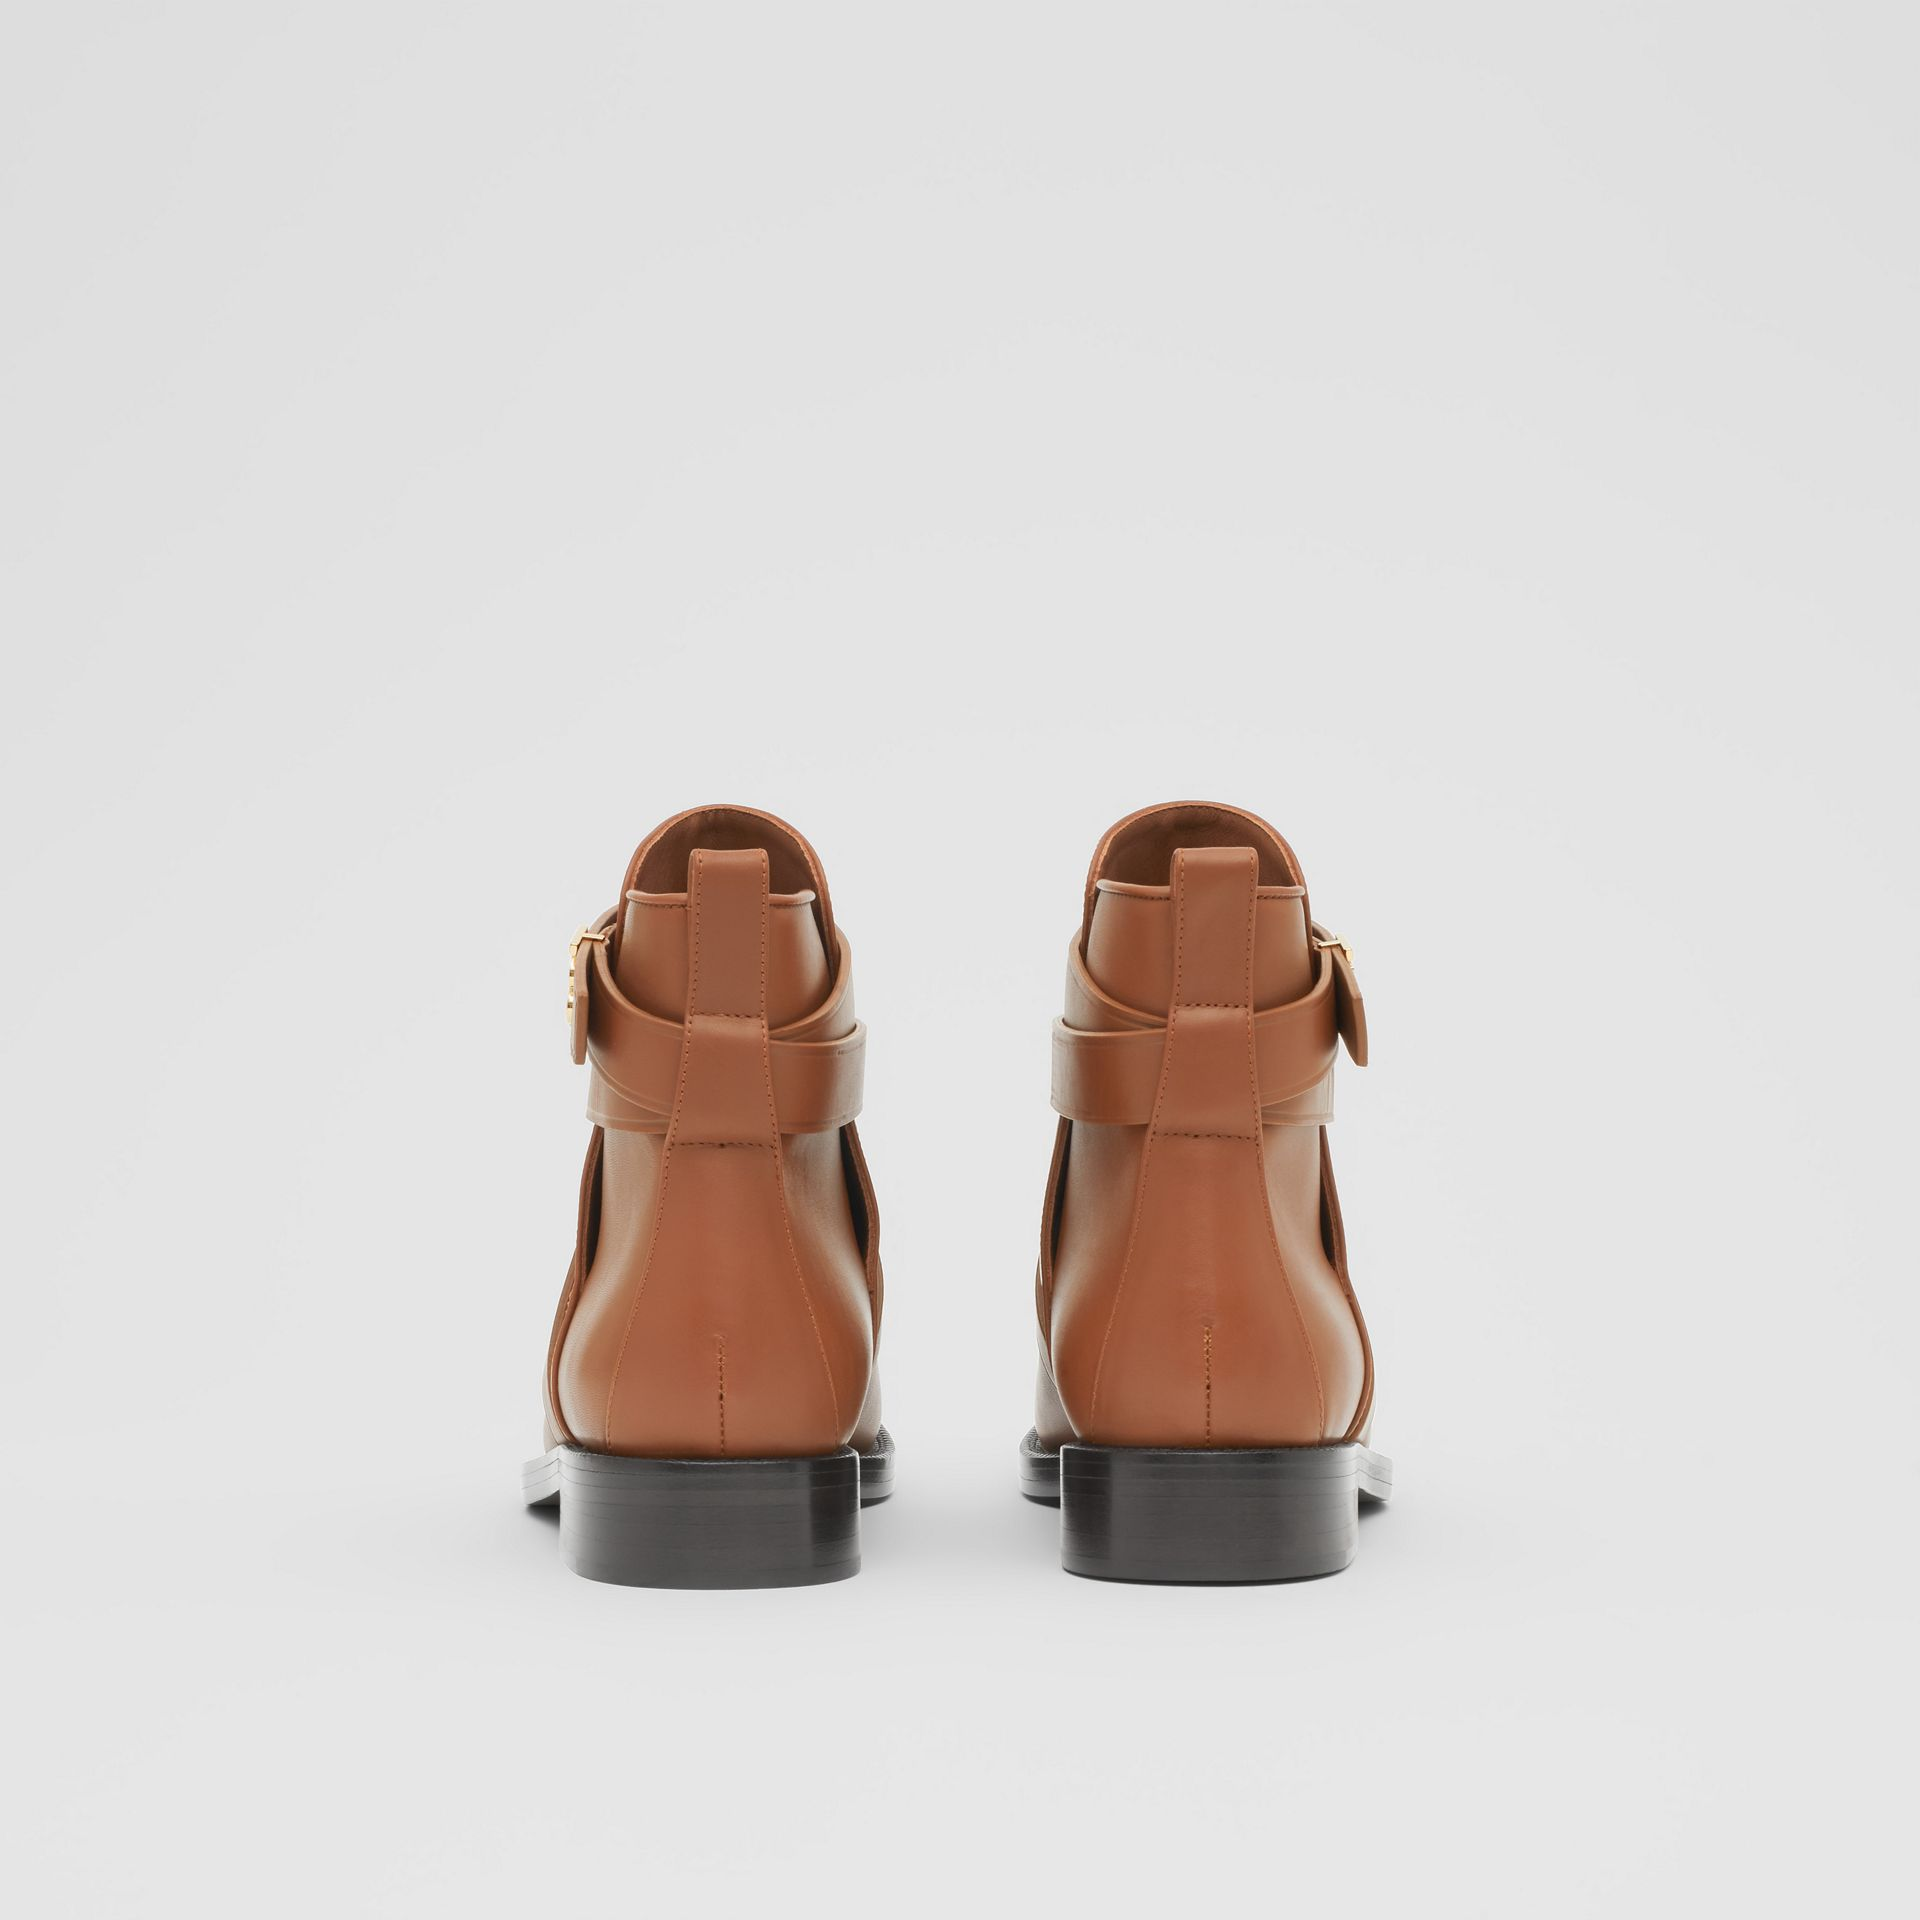 Monogram Motif Leather Ankle Boots in Tan - Women | Burberry United Kingdom - gallery image 3